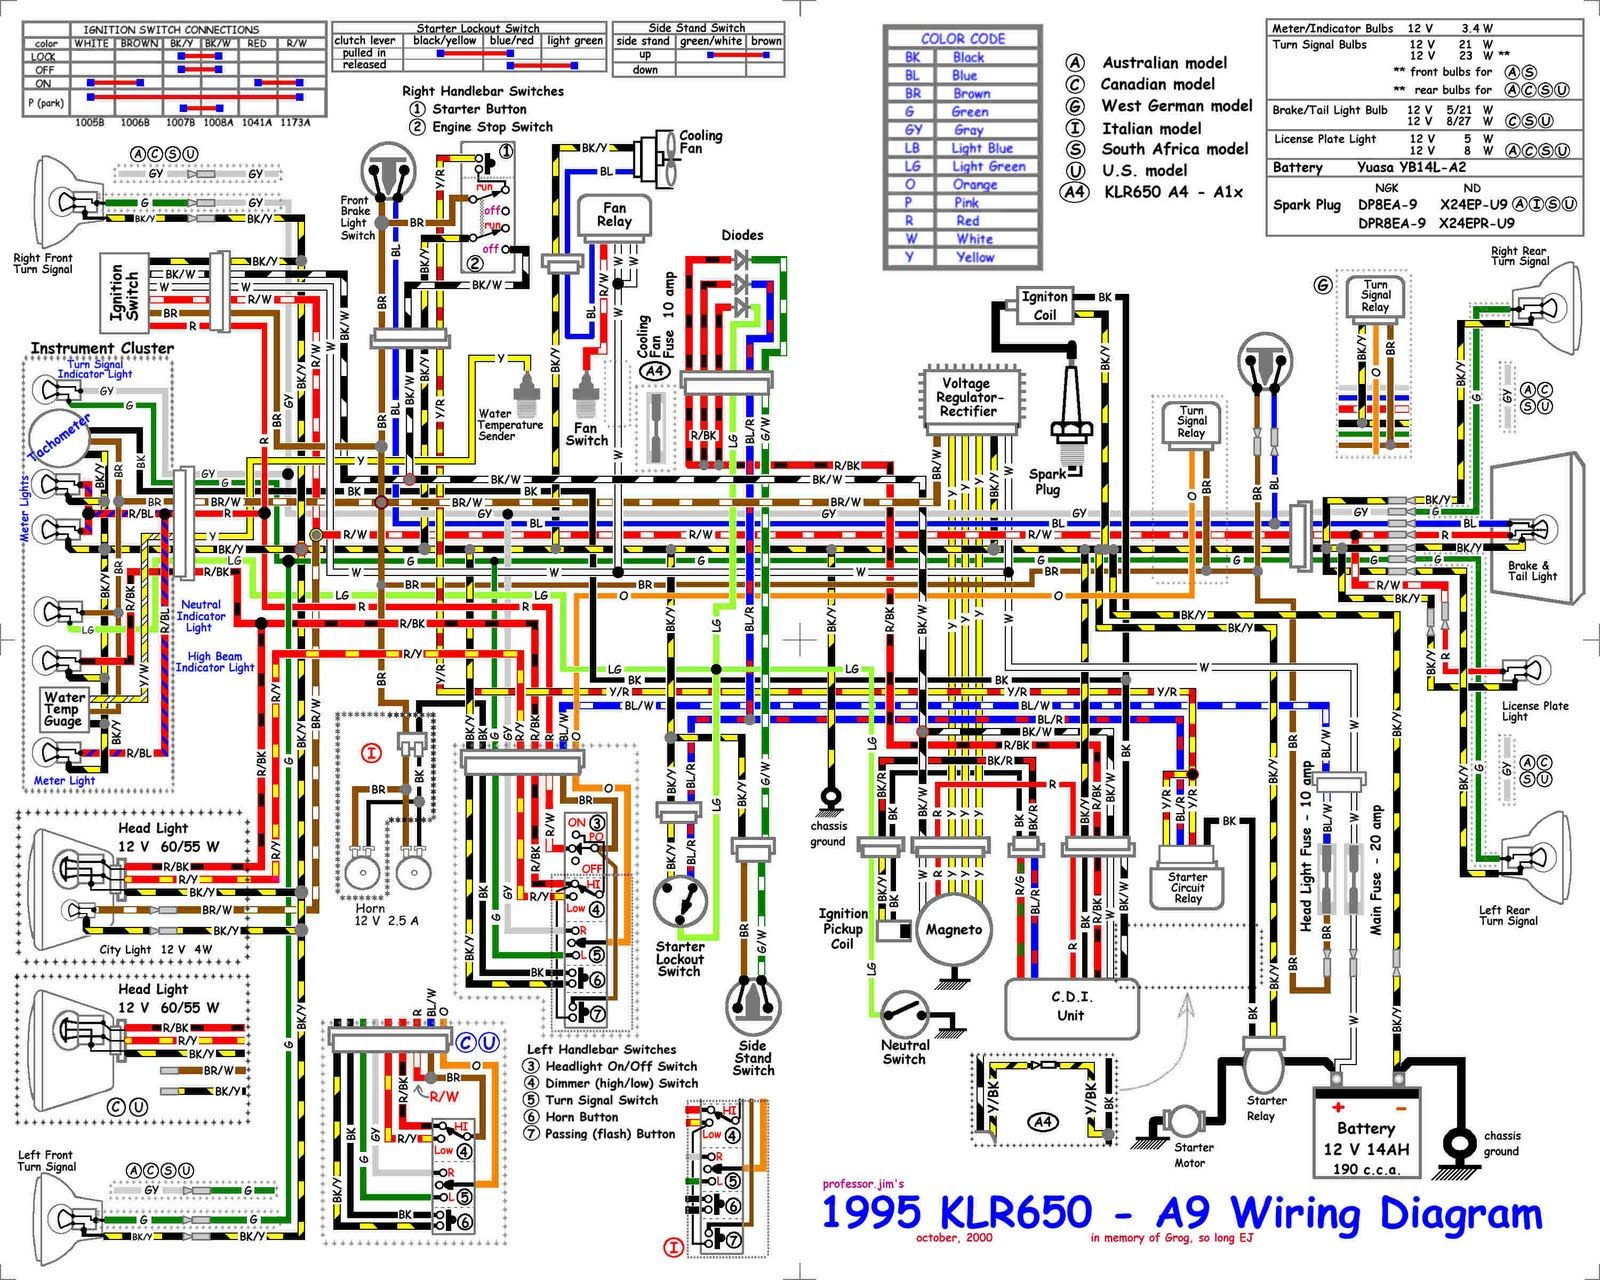 1998 chevy wiring diagram wiring diagram 1998 chevy cavalier wiring diagram 1998 chevrolet wiring diagram [ 1600 x 1280 Pixel ]